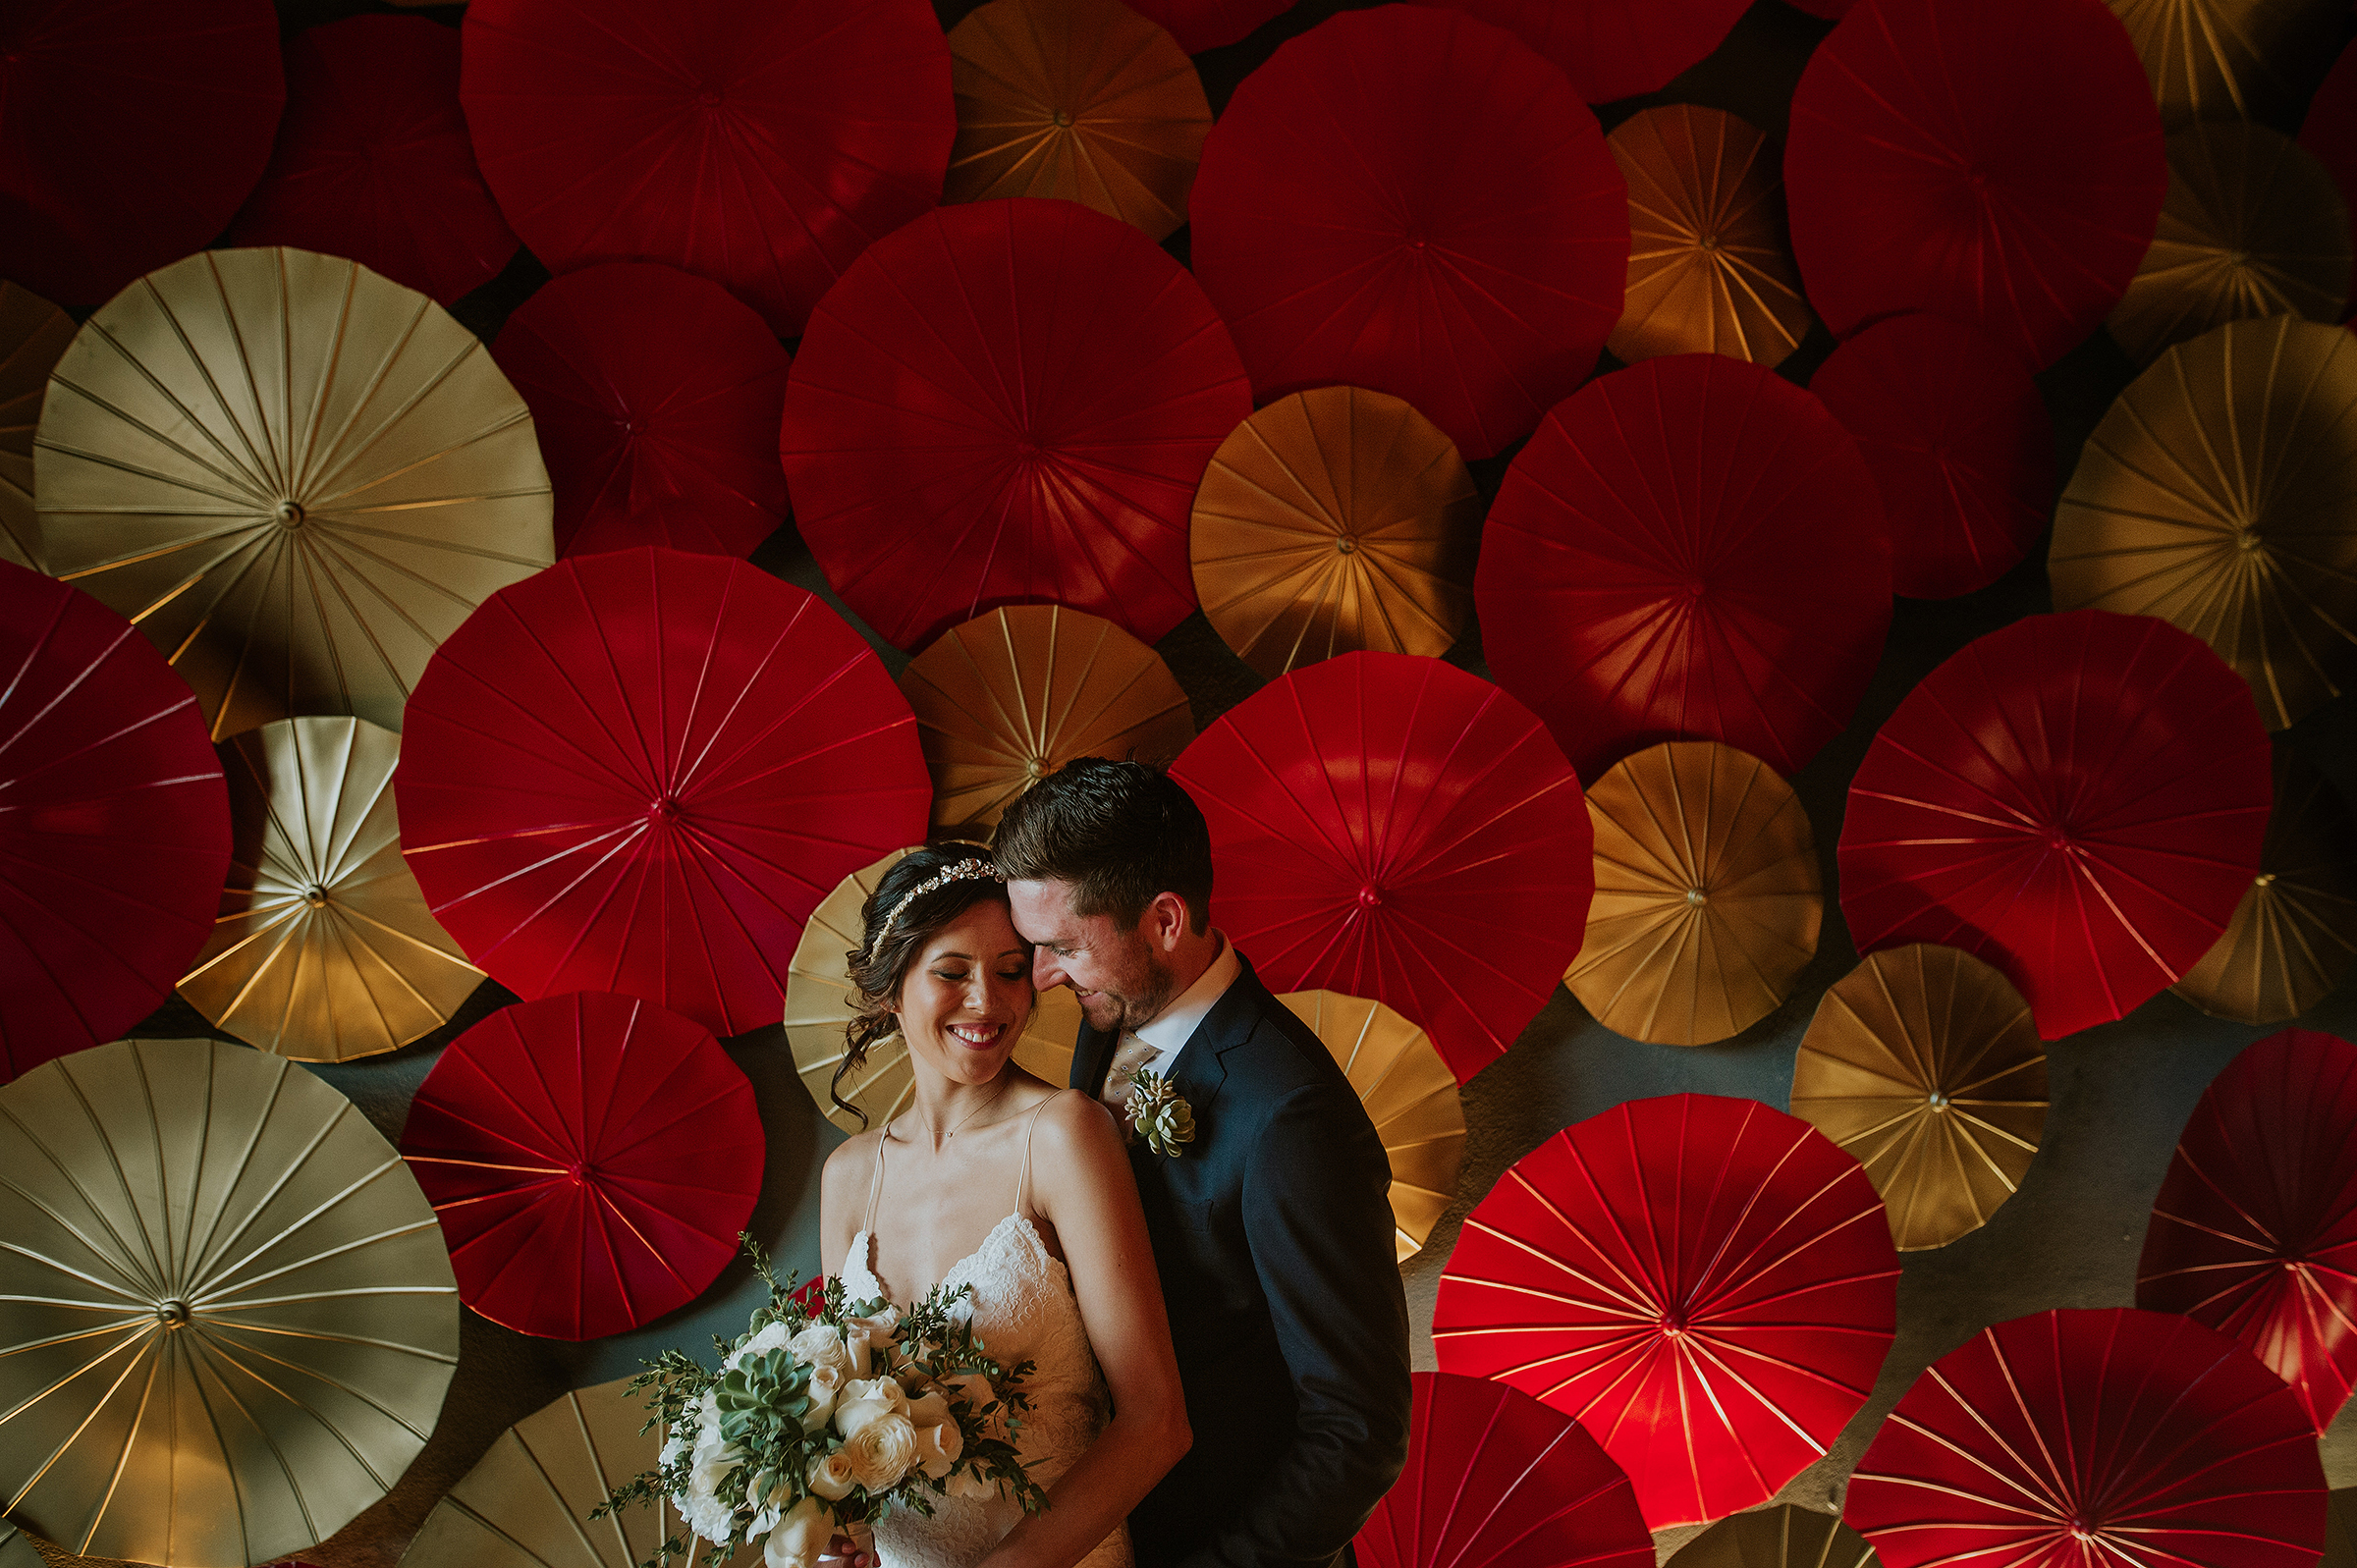 Cheryl+Reed_Wedding_Kape_Photography_WeddingPhotography_Mexico_Boda_Fotografia_Royalton_Hideway_Cancun_RivieraMaya_PlayadelCarmen_Beach_456FB.jpg